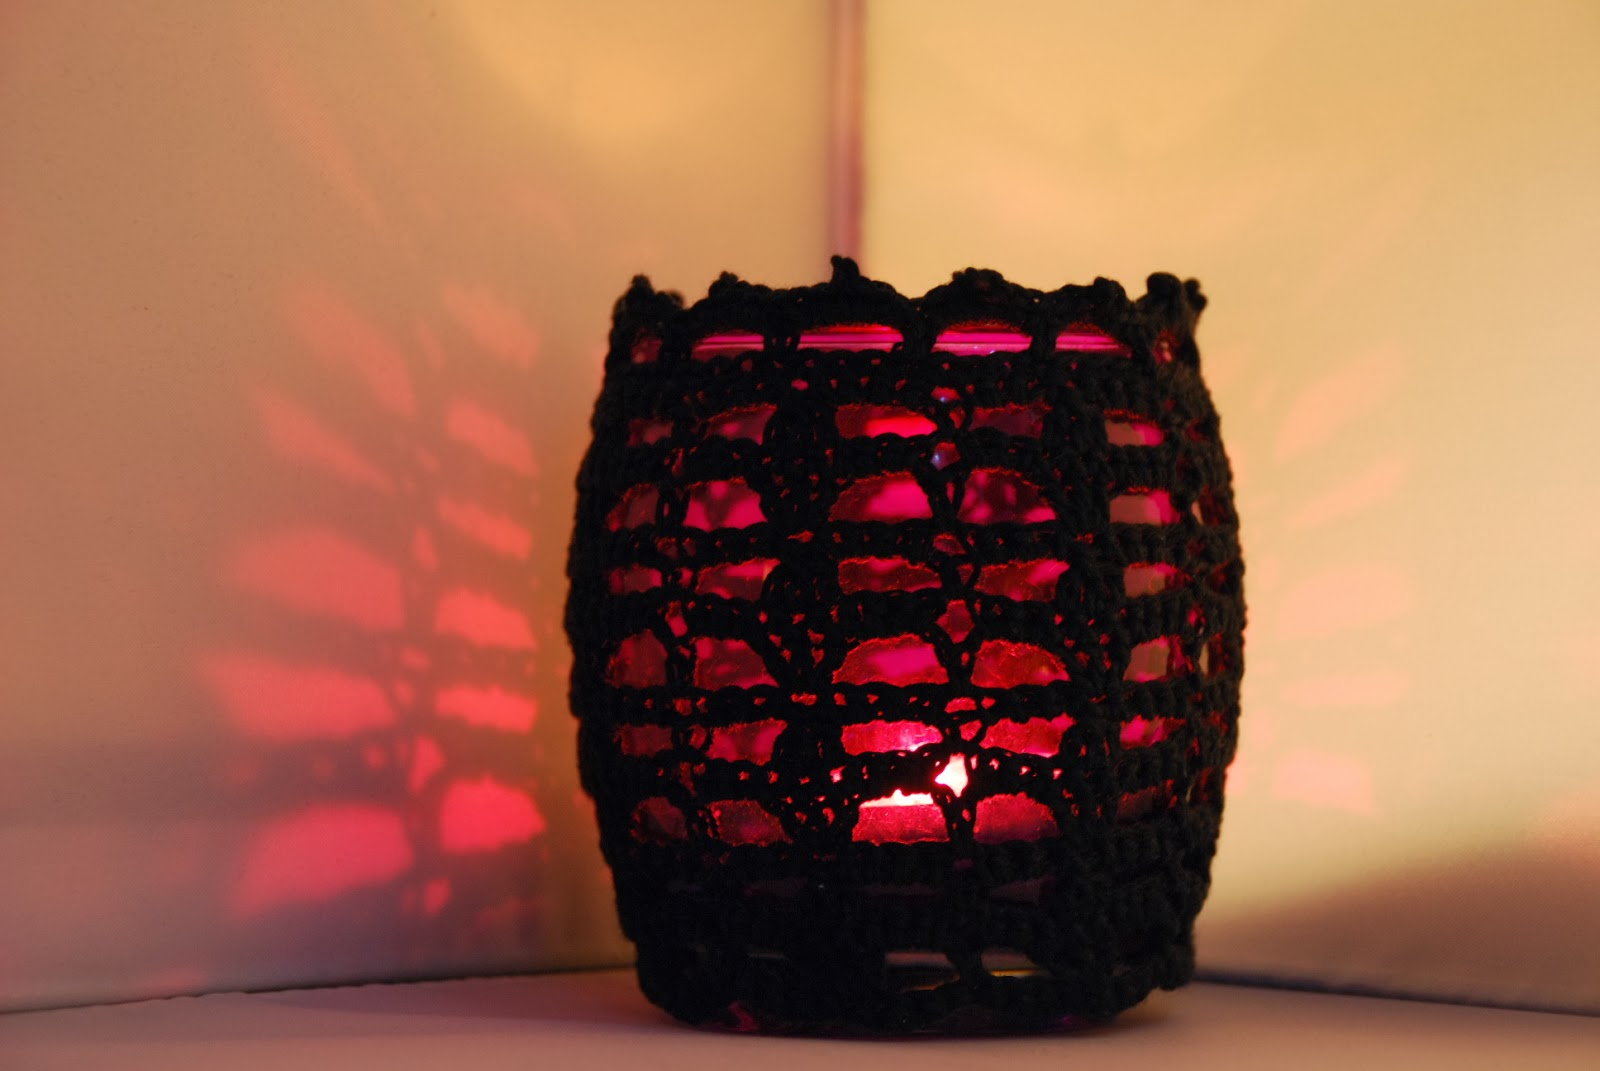 Crochet votive jar cosy pattern and tutorial: image of black crochet votive cosy by Amjaylou